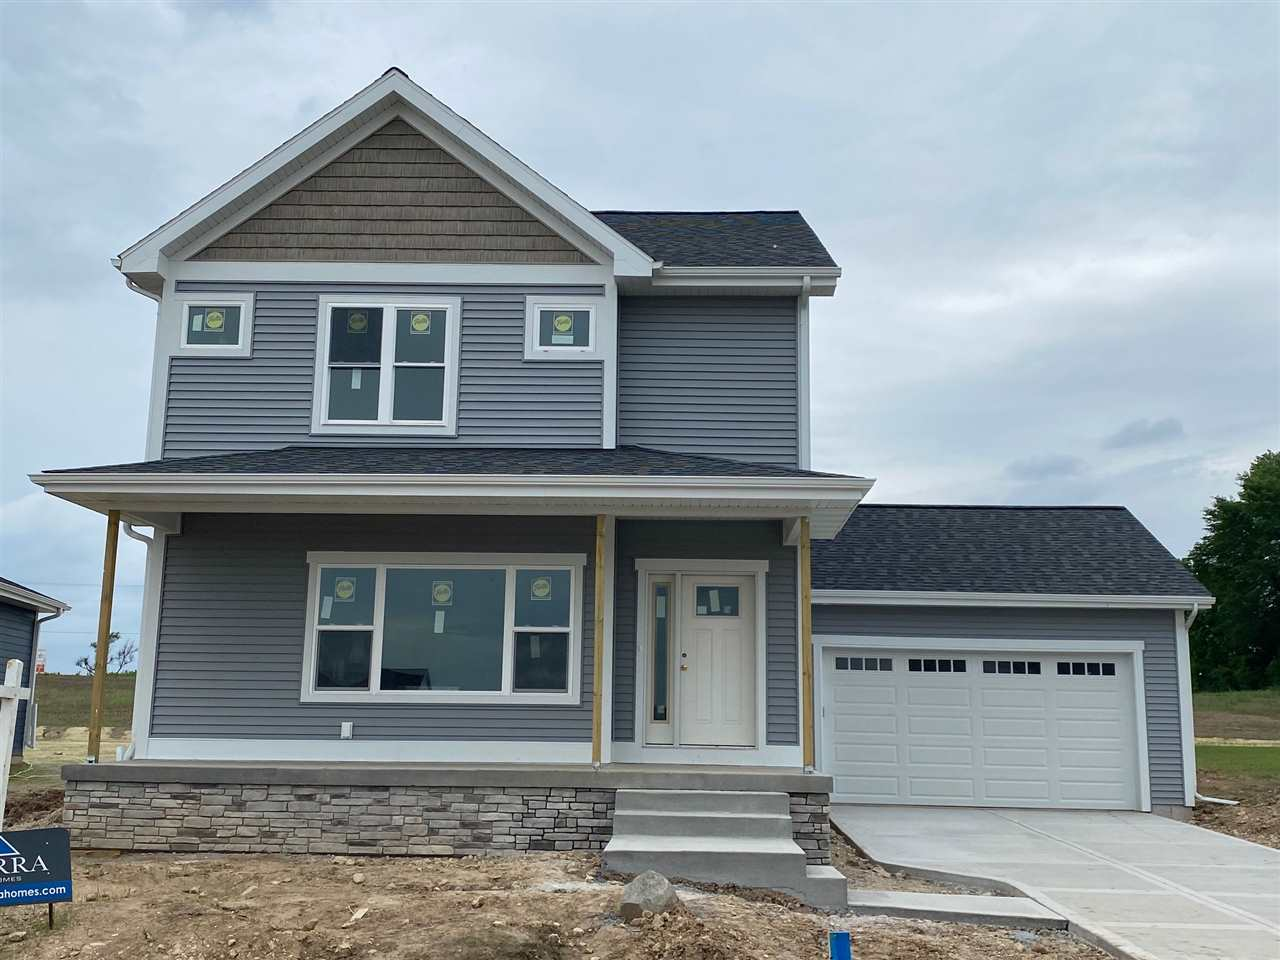 Under construction. This house will be ready for occupancy in June!  Alterra Design custom home in Fitchburg's popular new Terravessa Neighborhood!  Located right next to Oregon's state of the art, new K-6 school opening in fall of 2020.   Features to include bright and open floor plan, walk in pantry, large kitchen island, 2nd floor laundry, large mudroom, and walk in closets in all the bedrooms.  MRP $419,900-$449,900 depending on finish selections and finishing the lower level.